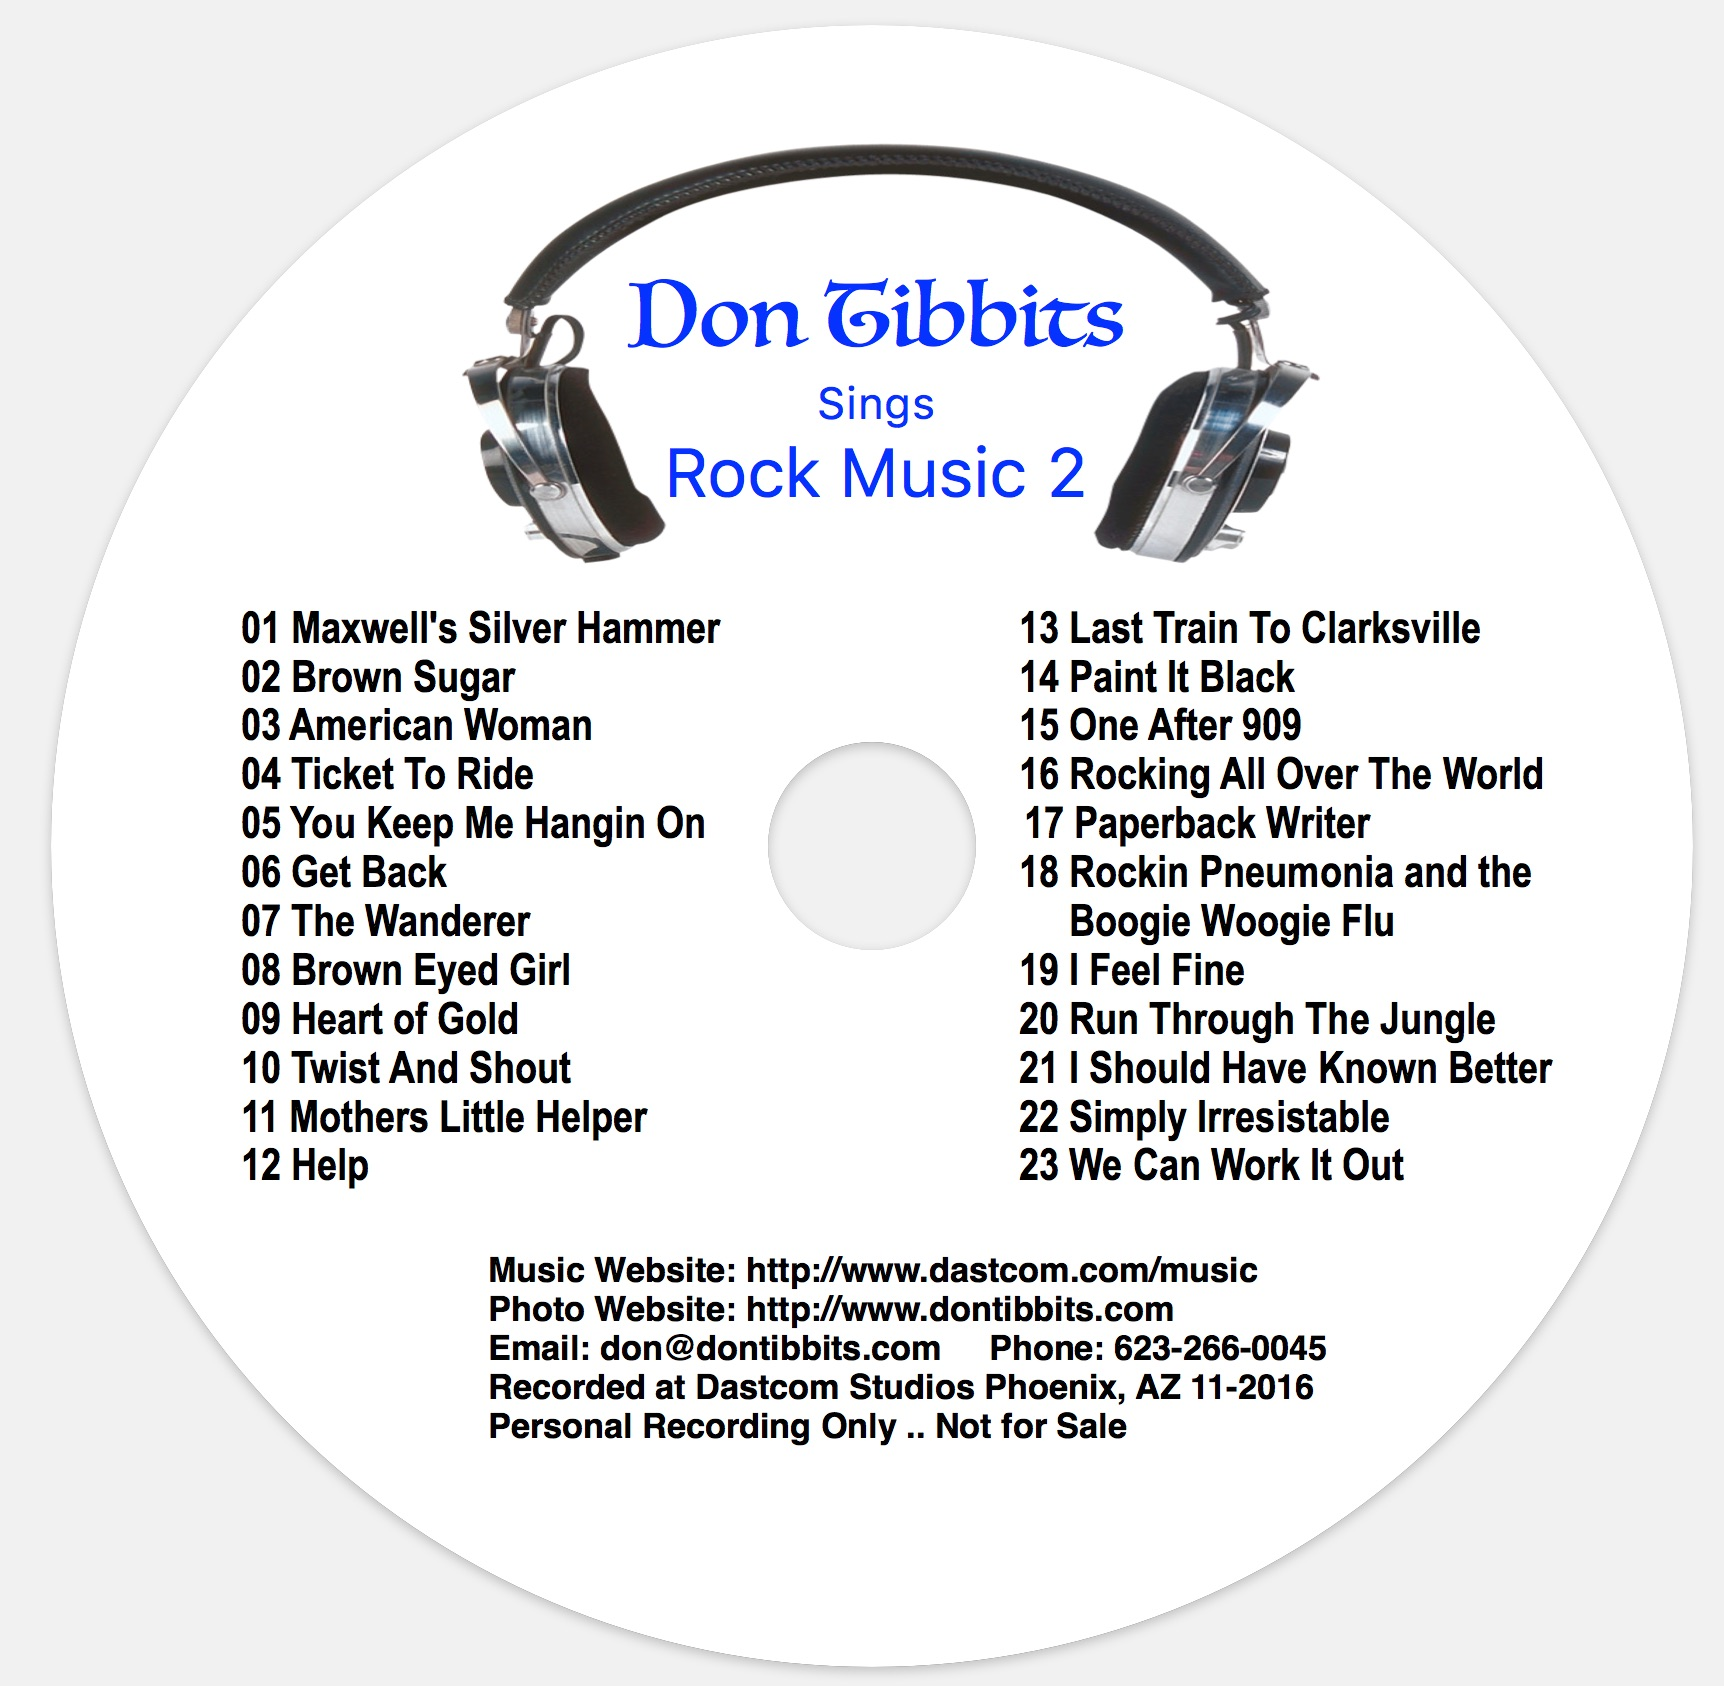 Don Tibbits Music